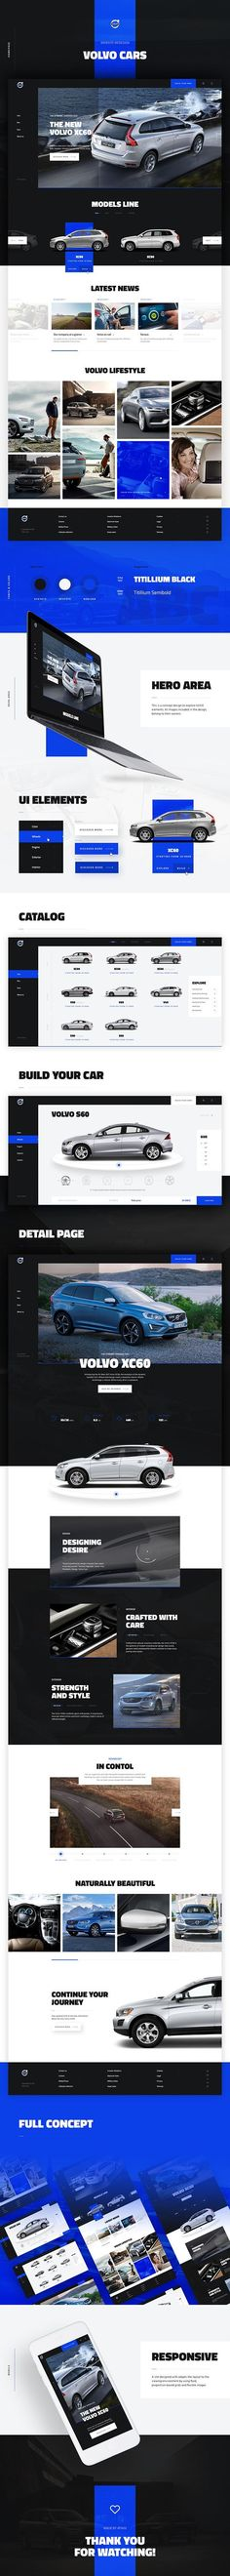 Website redesign concept for Volvo by Atwix.. If you're a user experience professional, listen to The UX Blog Podcast on iTunes.. If you're a user experience professional, listen to The UX Blog Podcast on iTunes.